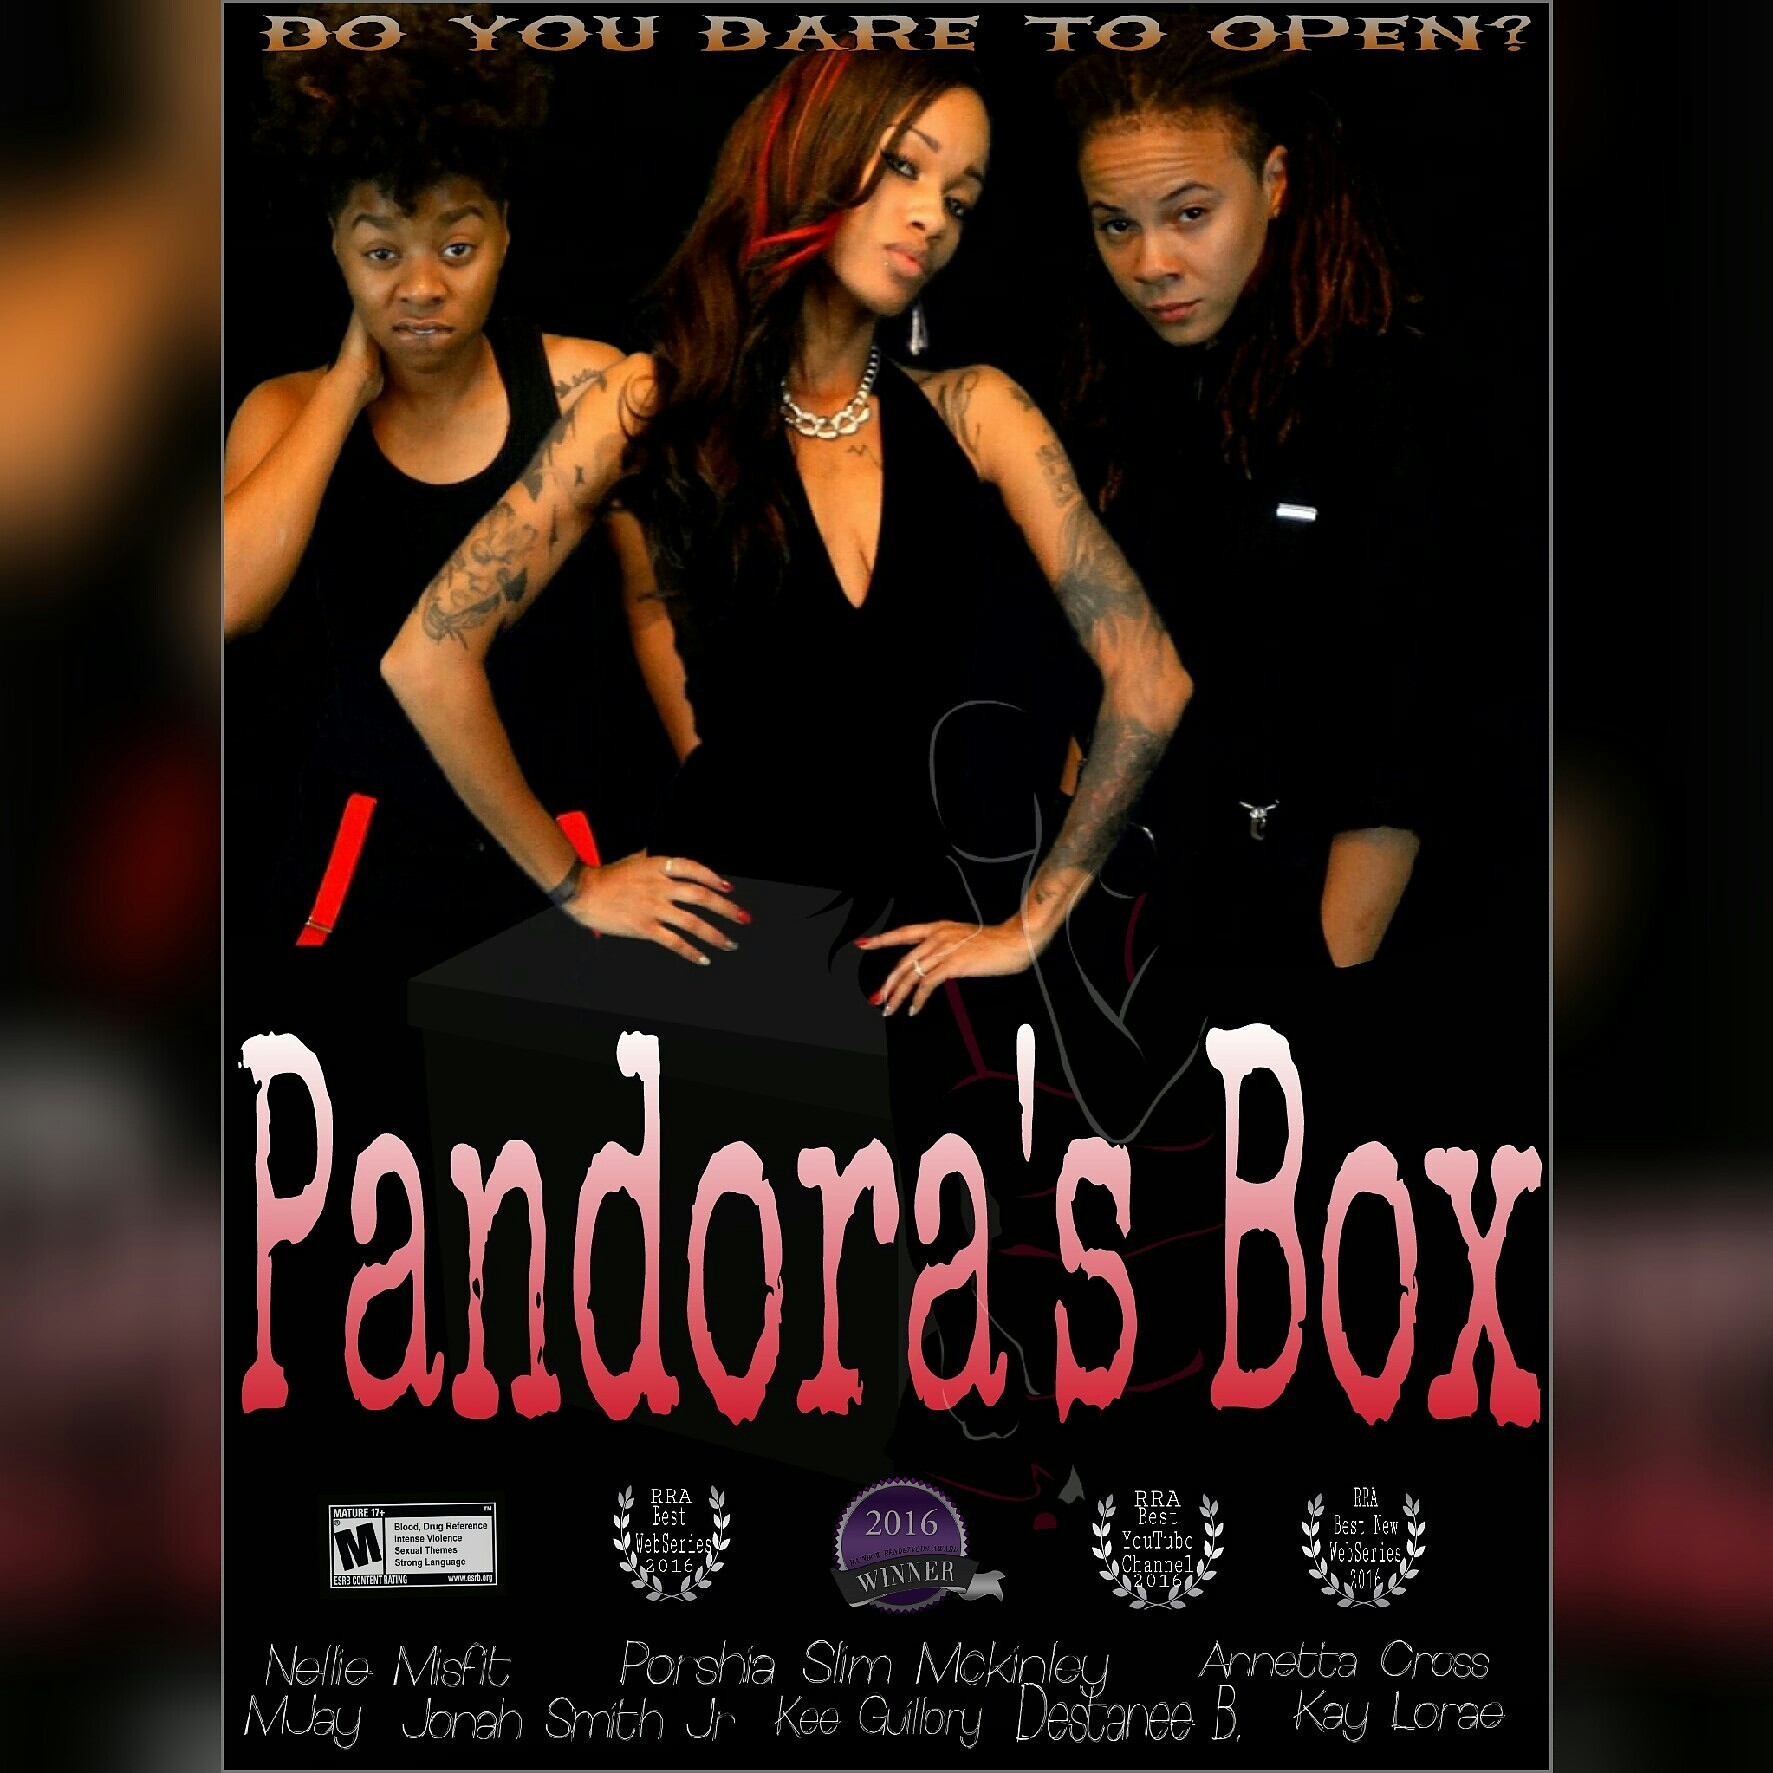 theme of pandoras box